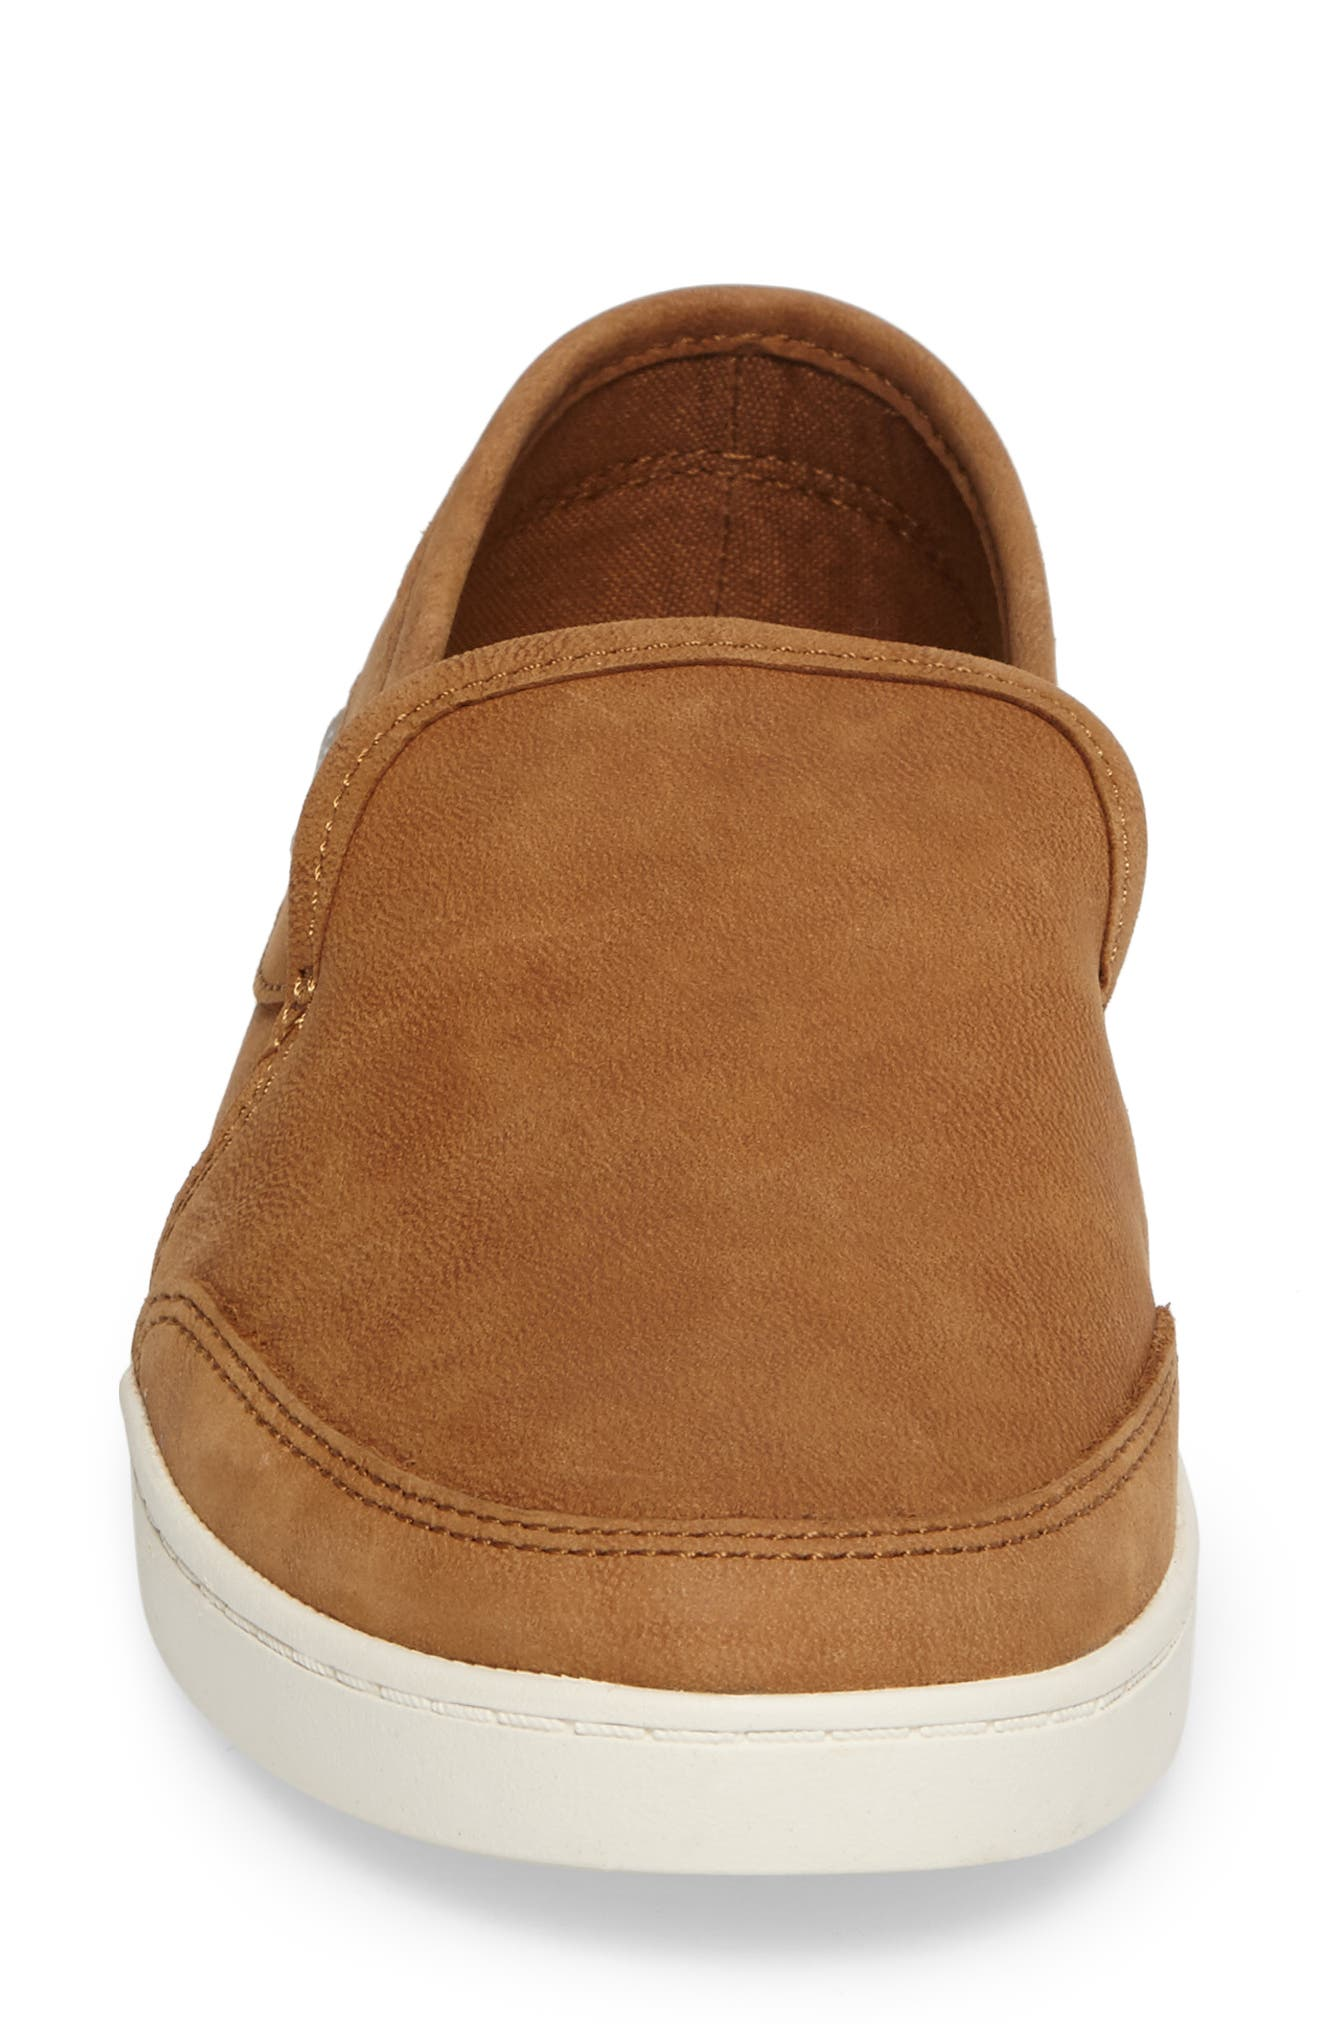 'Pair O Dice' Slip On,                             Alternate thumbnail 4, color,                             Tobacco Brown